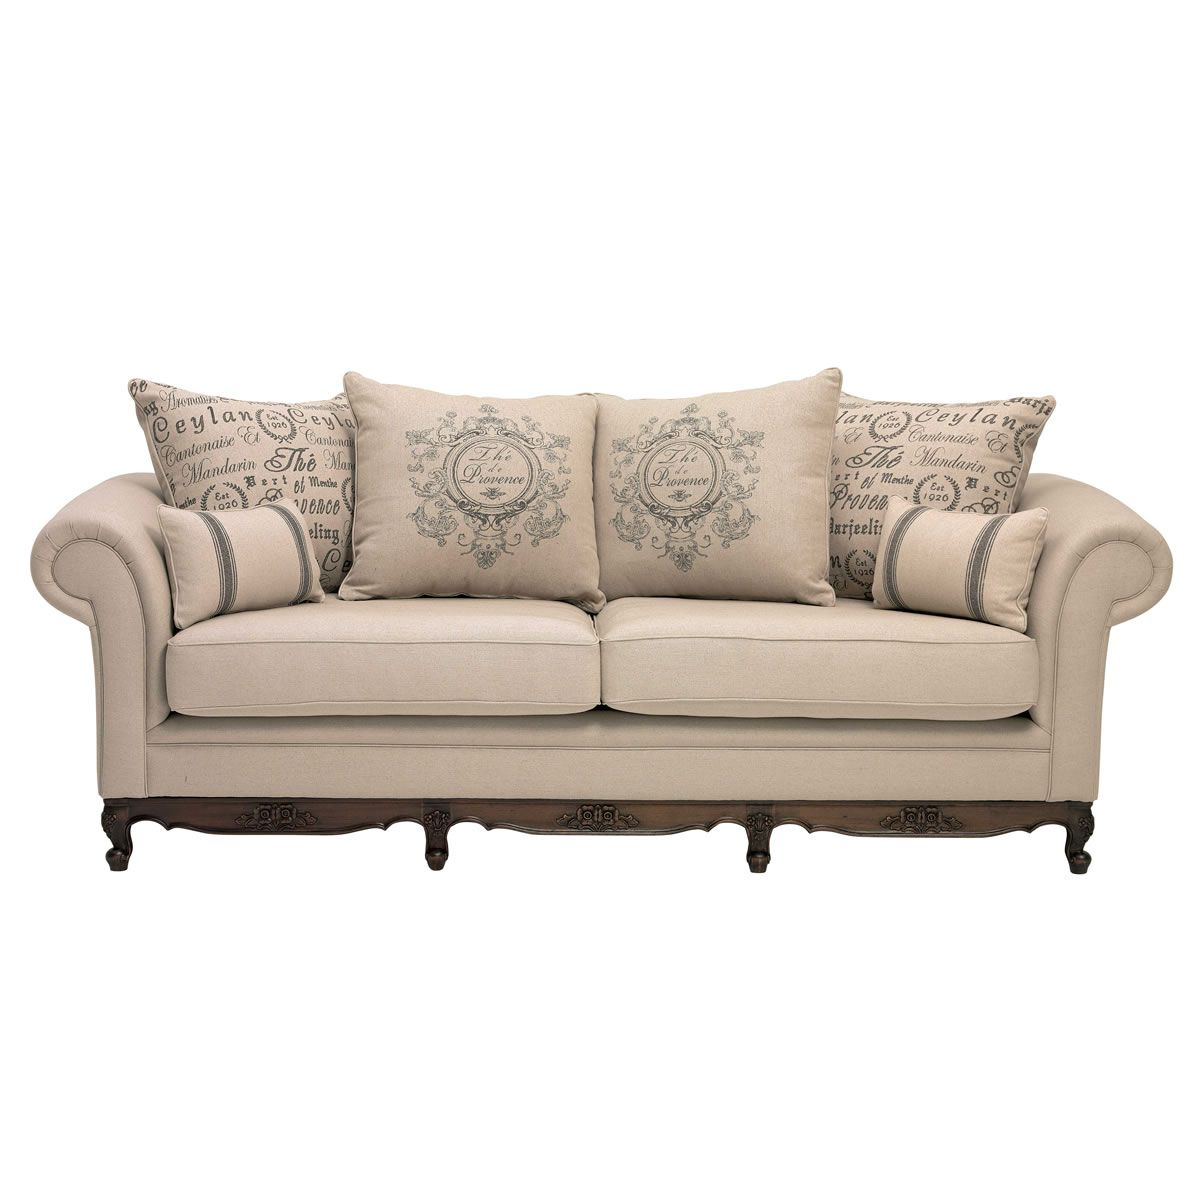 Country Leather Sofa: Provence 3-seater Sofa From Domayne